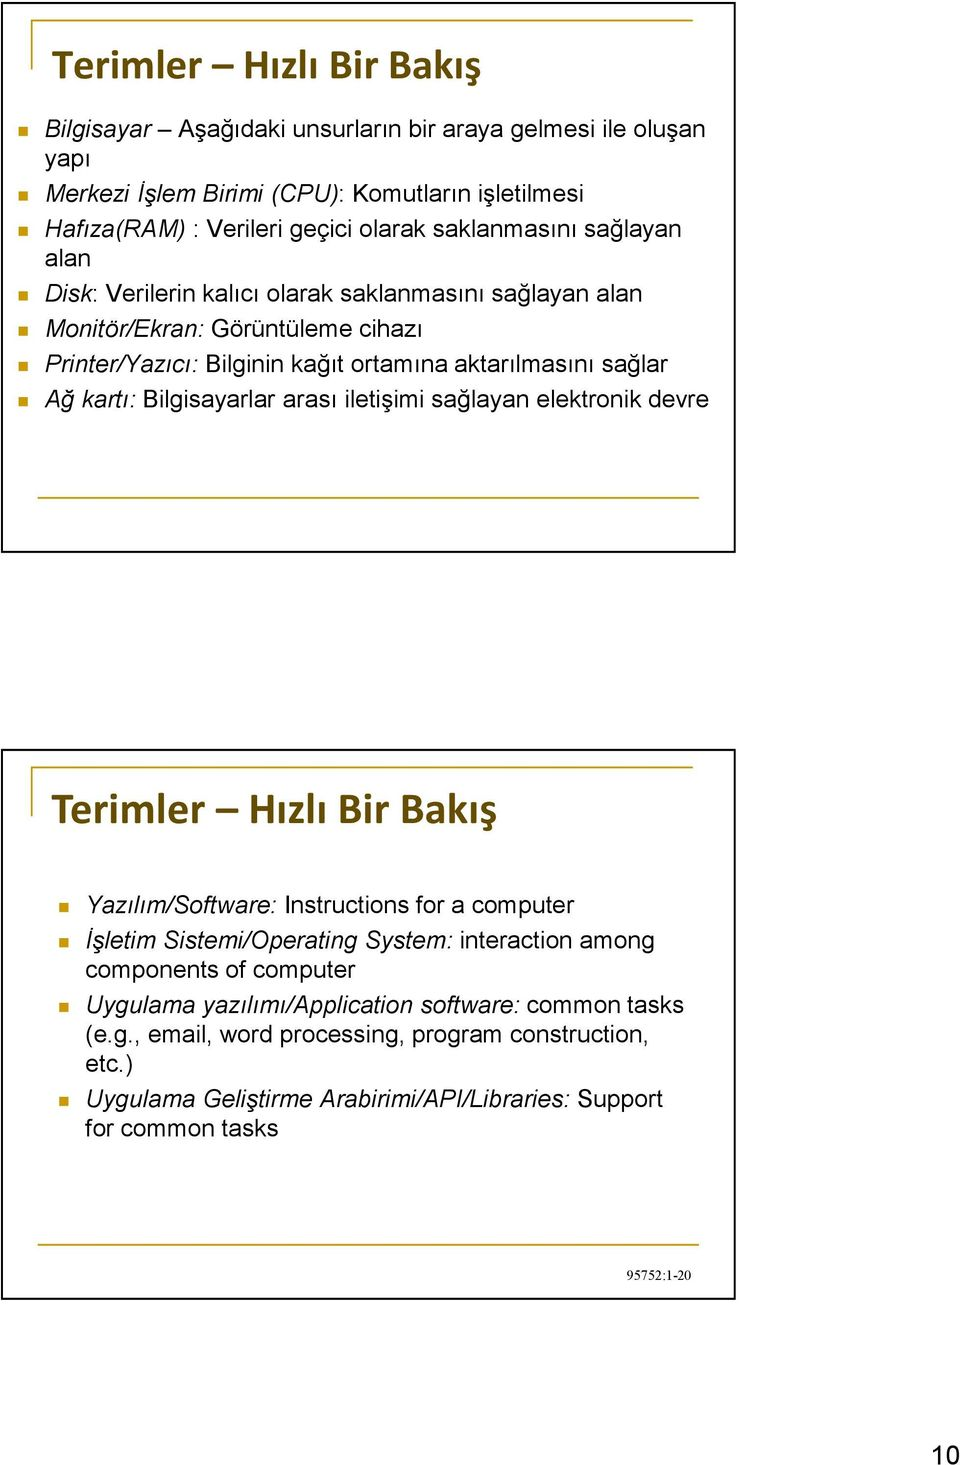 arası iletişimi sağlayan elektronik devre Terimler Hızlı Bir Bakış Yazılım/Software: Instructions for a computer İşletim Sistemi/Operating System: interaction among components of computer